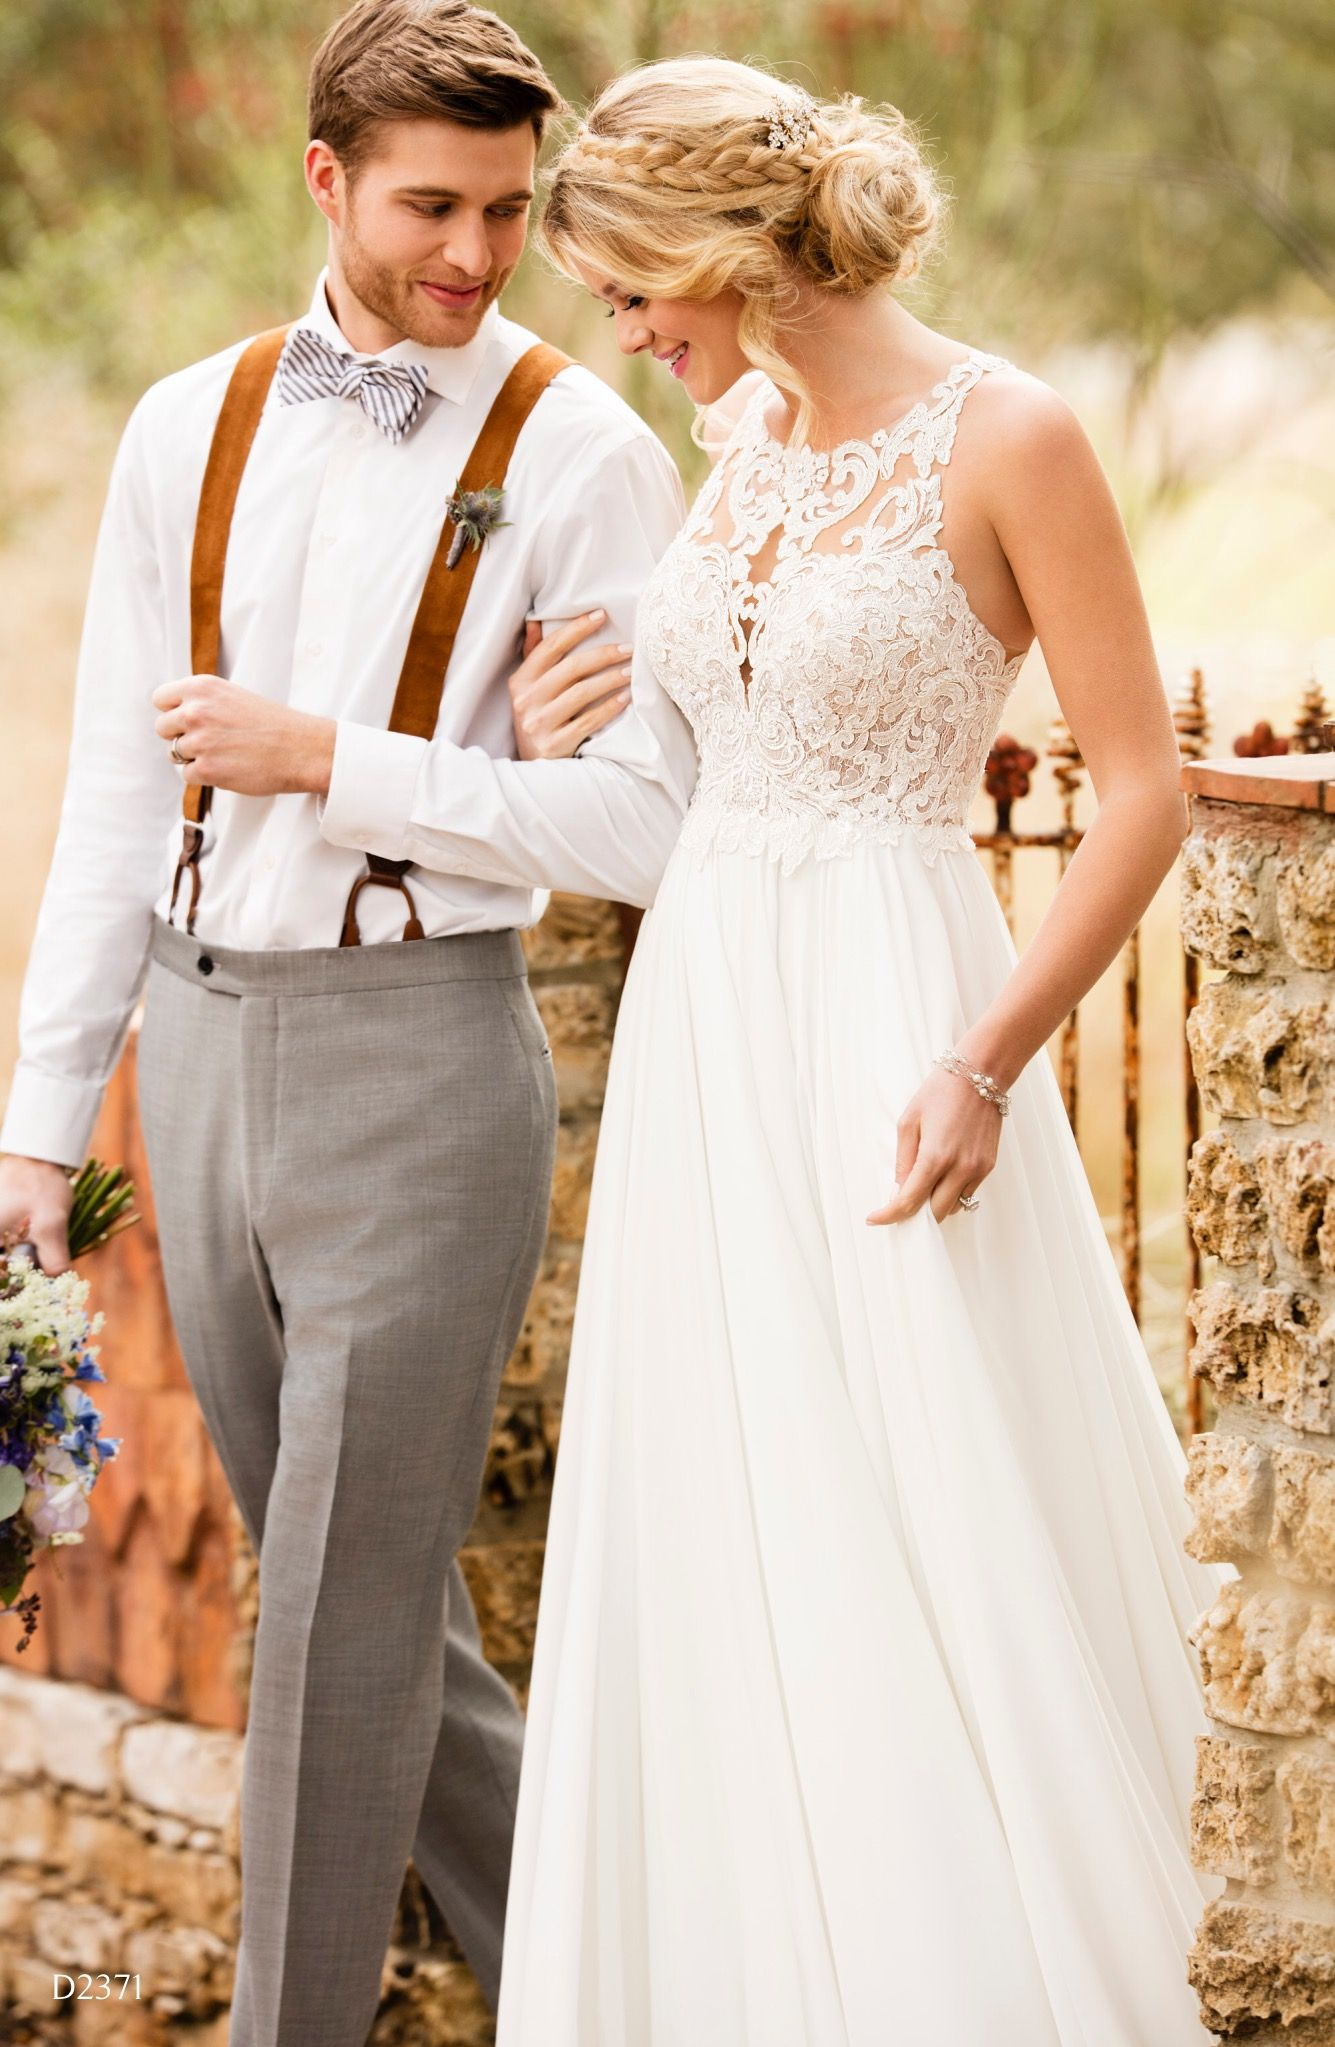 Pin by suzy kelly on wedding pinterest wedding wedding dress